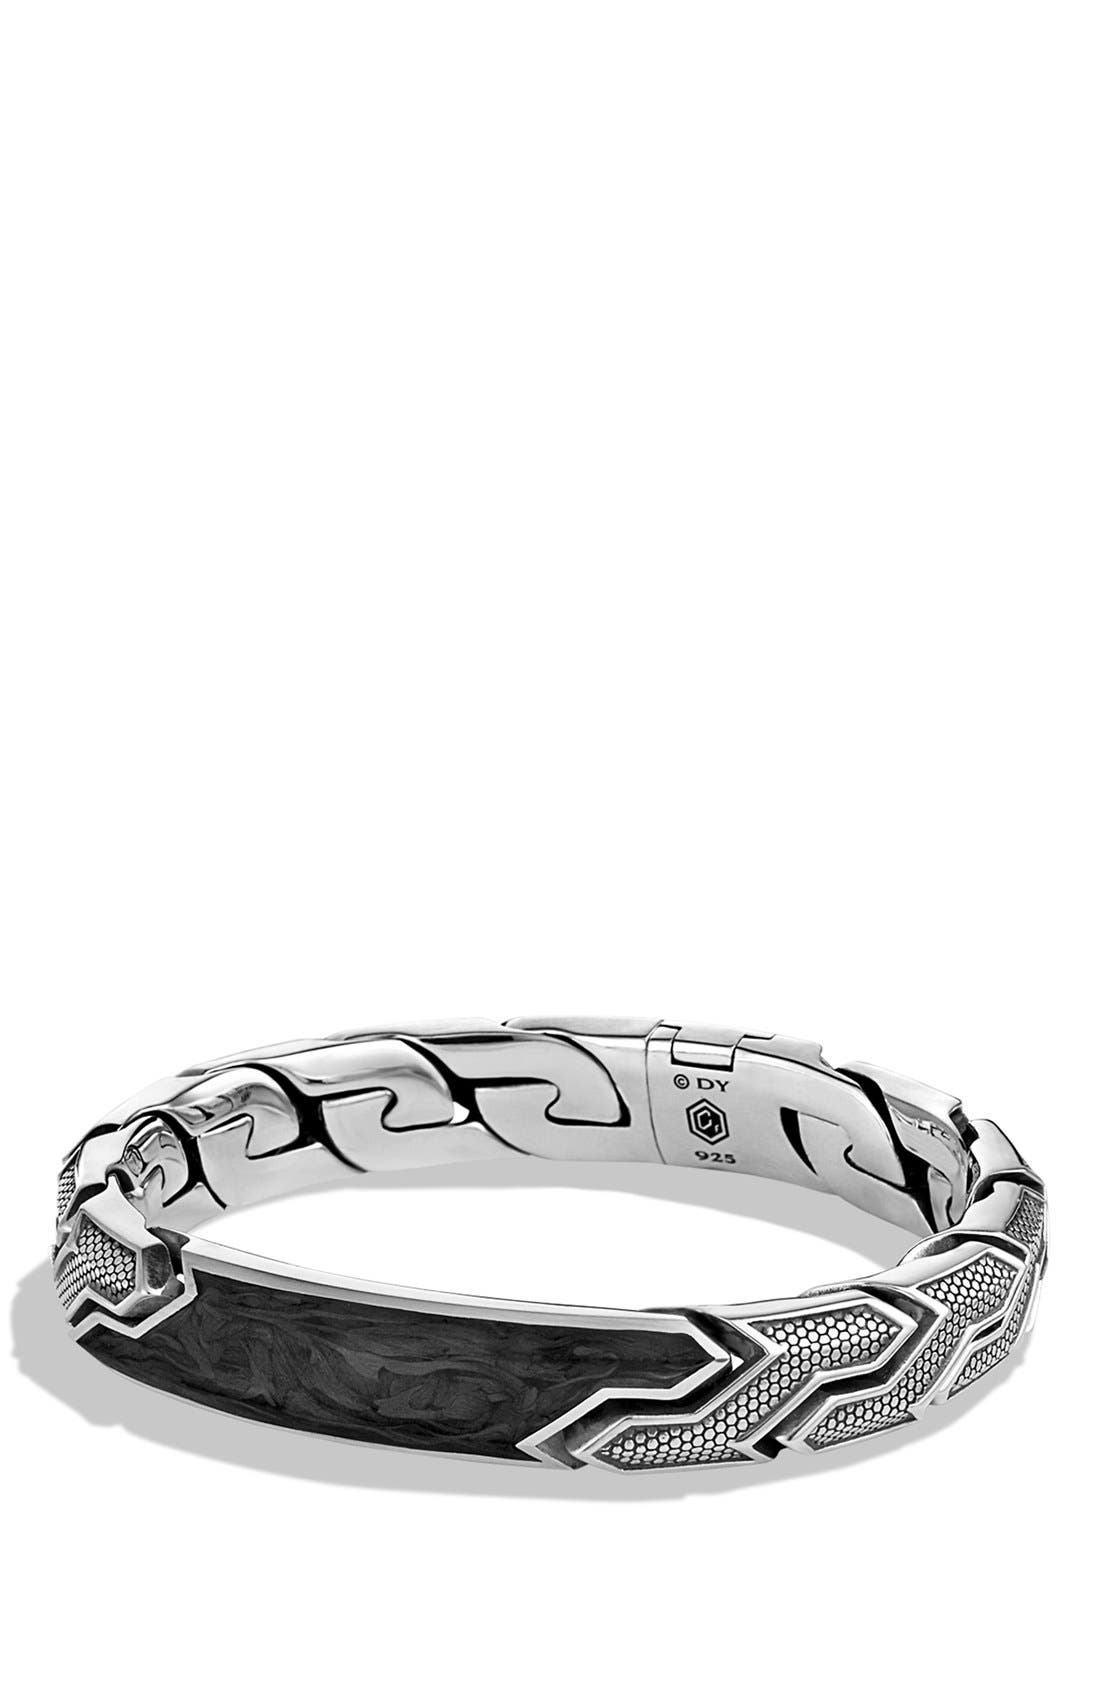 Forged Carbon ID Bracelet,                             Main thumbnail 1, color,                             Forged Carbon